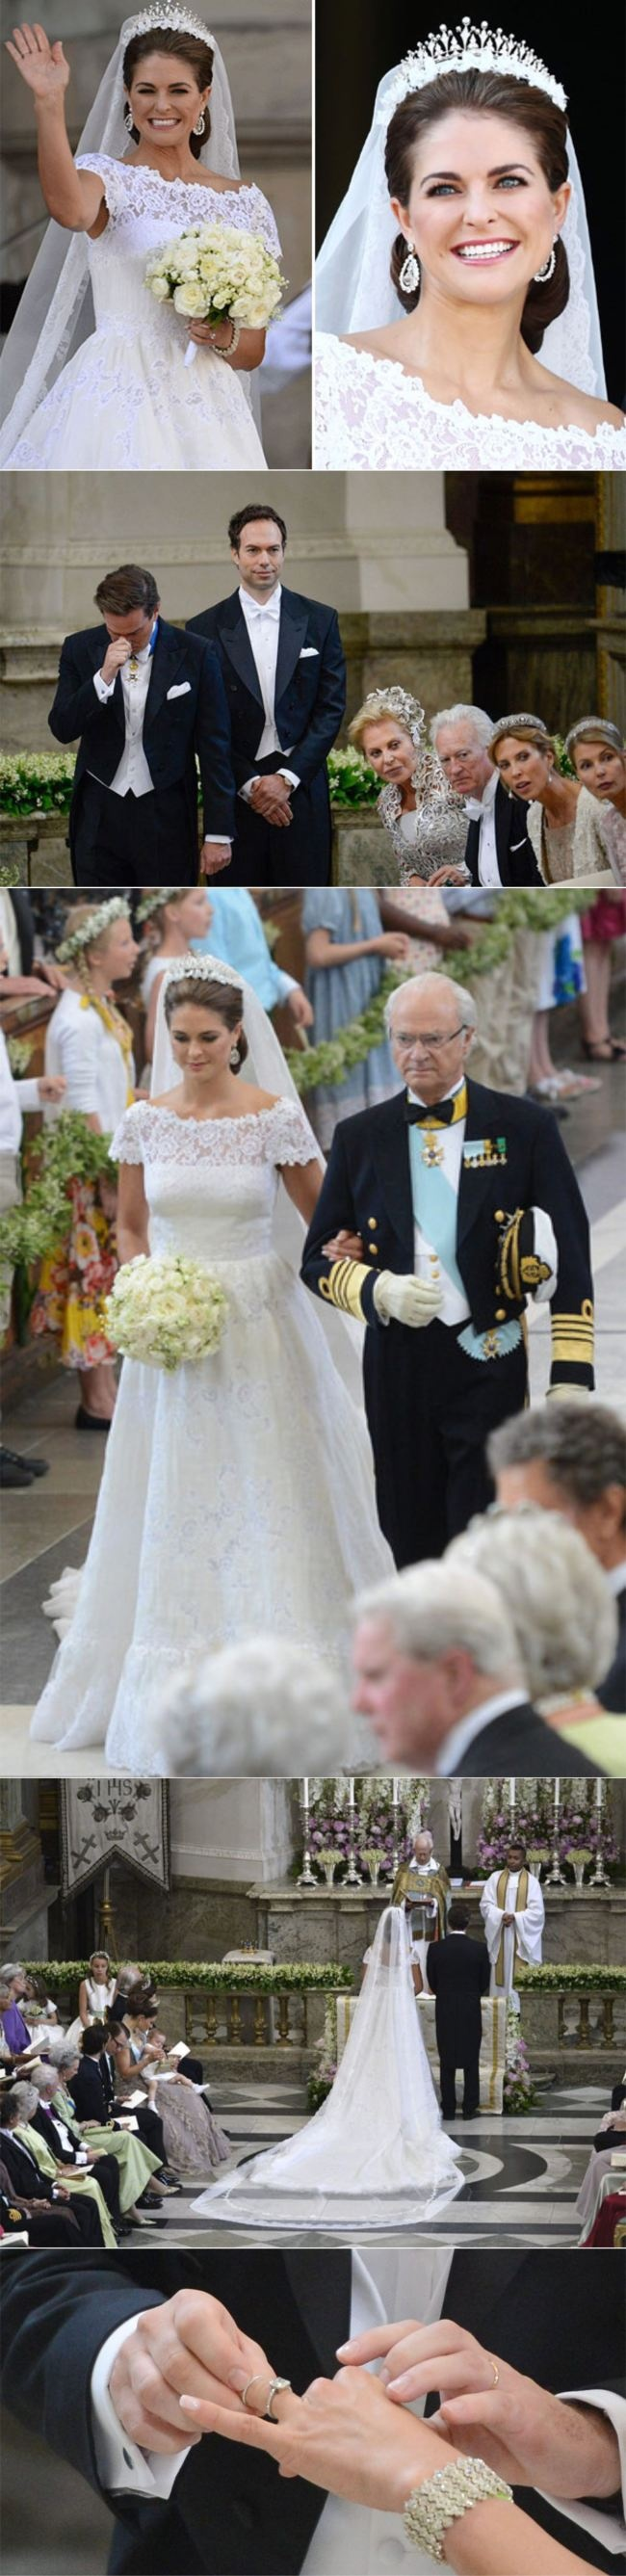 Princess Madeleine of Sweden's wedding to American businessman Chris O'Neil, Royal Palace chapel, Stockholm - 8 June 2013   Dress: Valentino Haute Couture